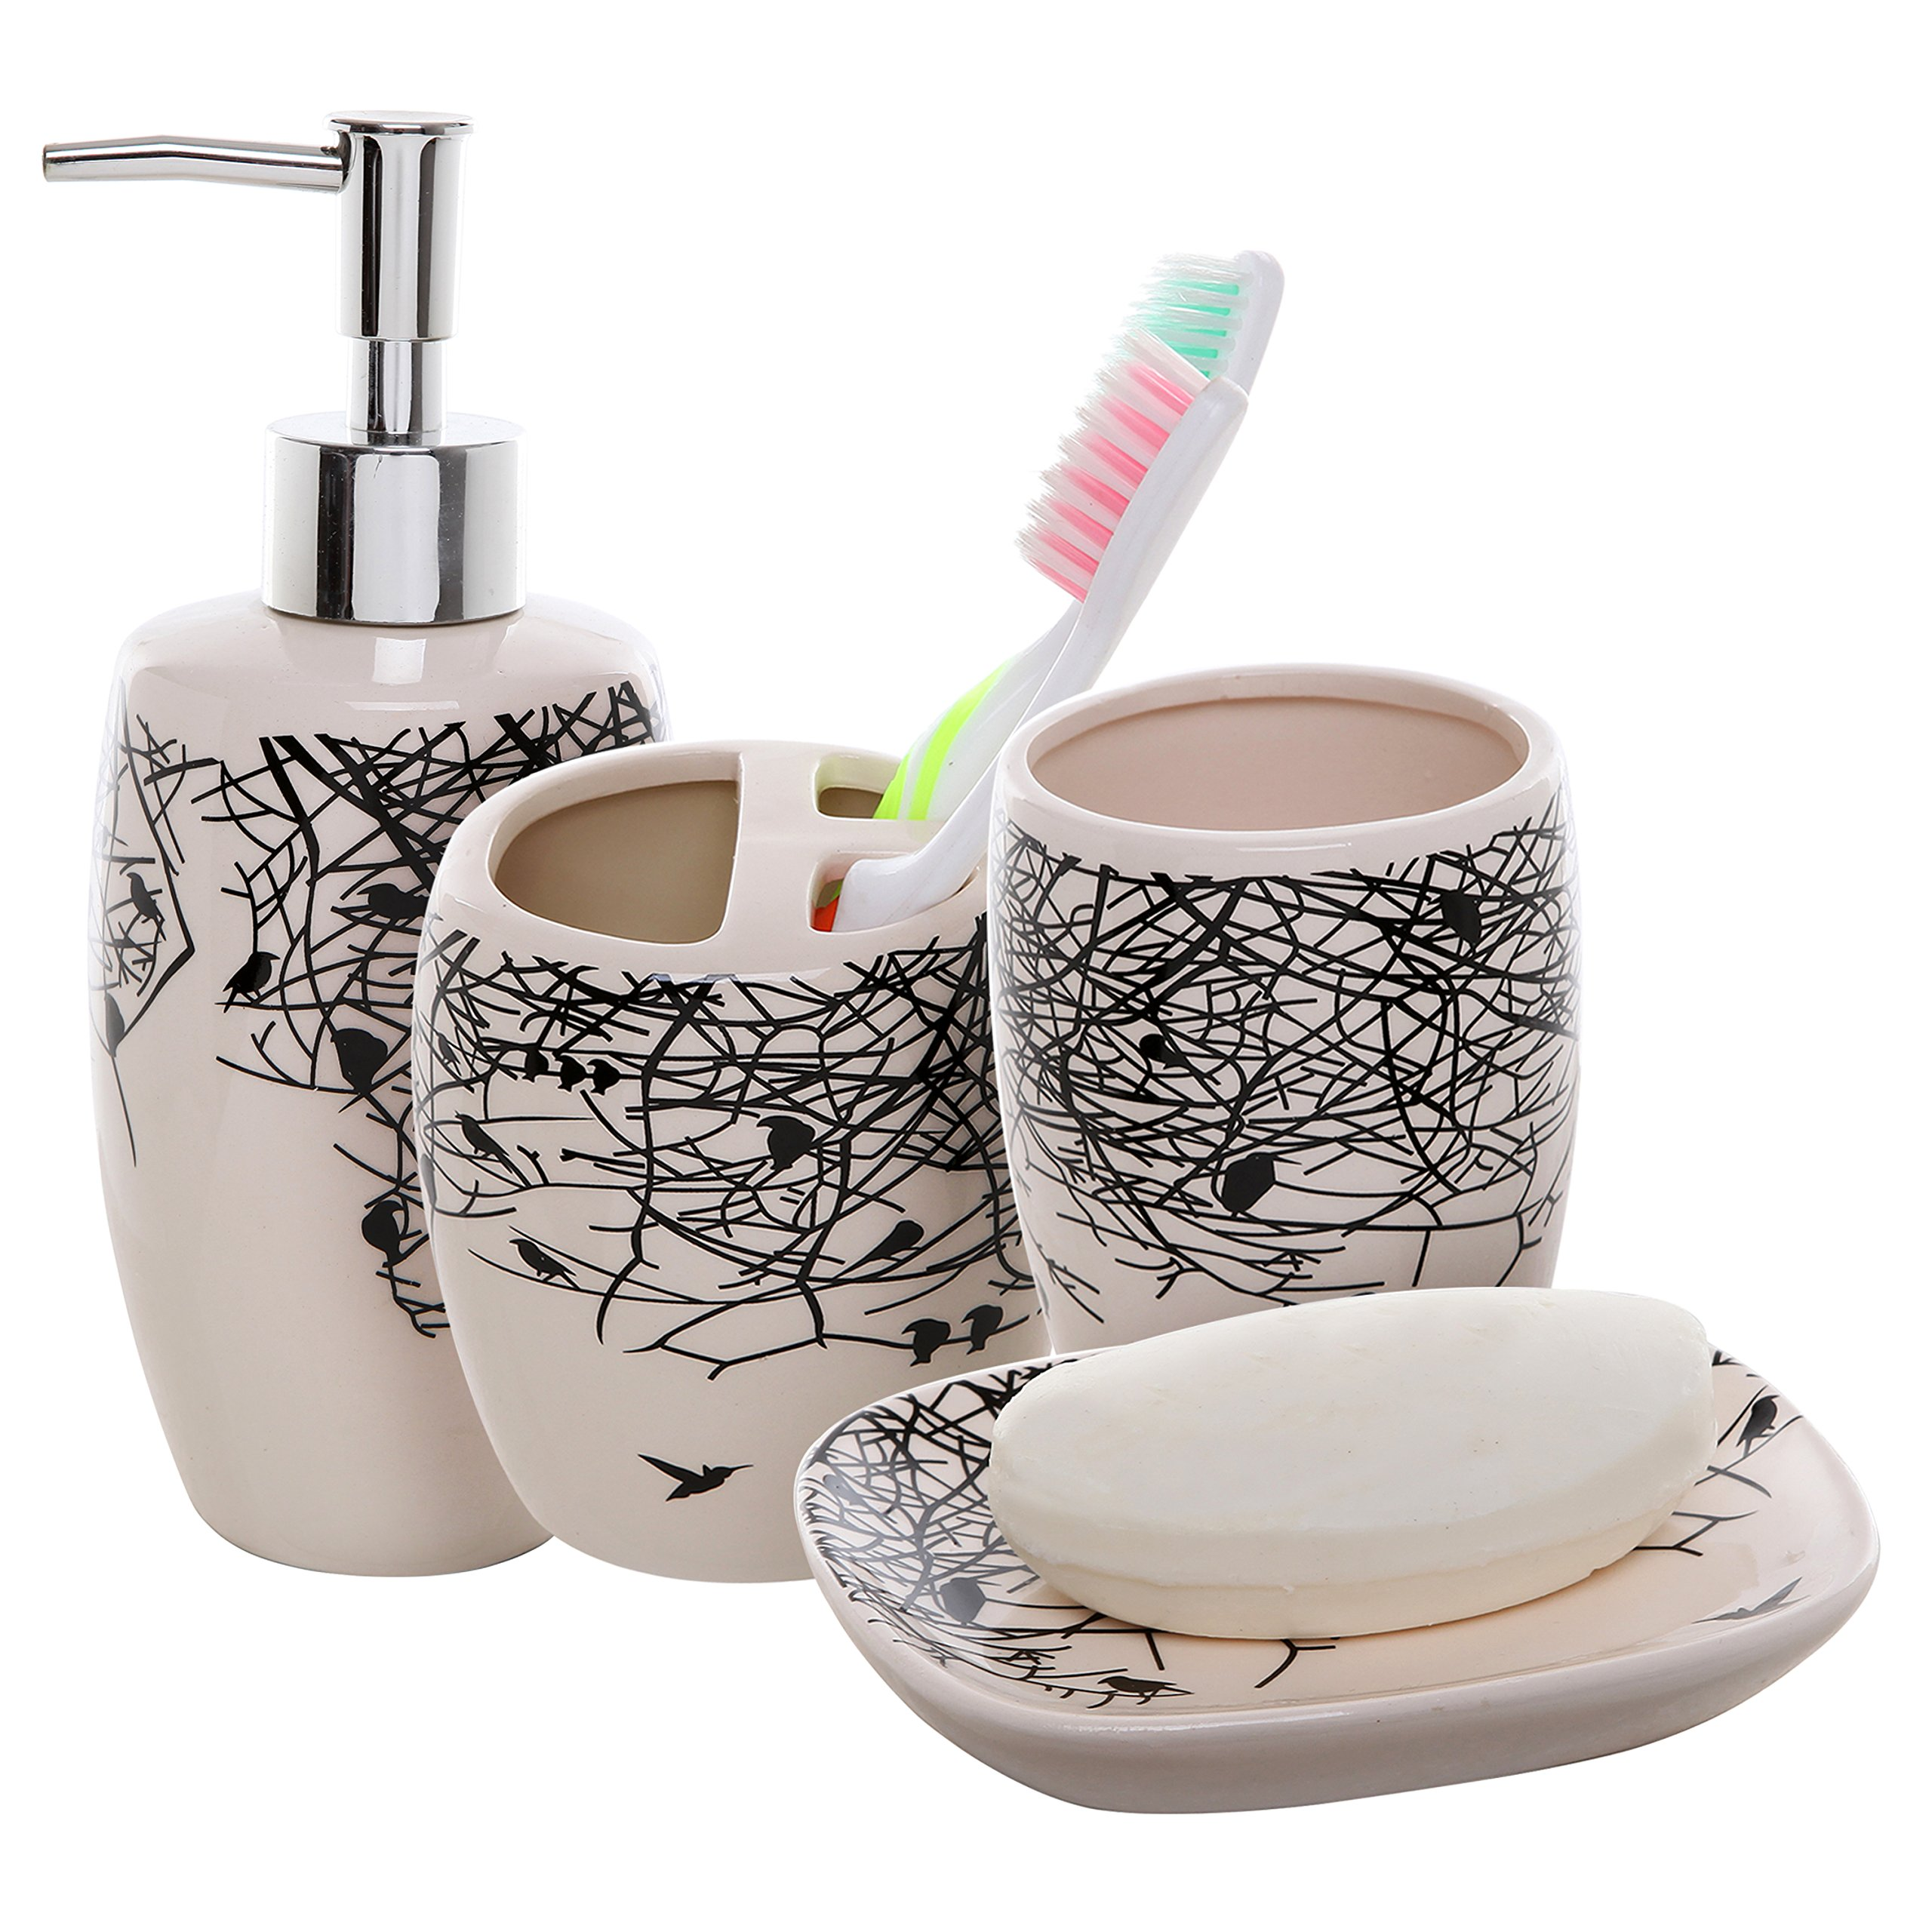 4 piece beige ceramic bathroom accessories set for Ceramic bathroom accessories